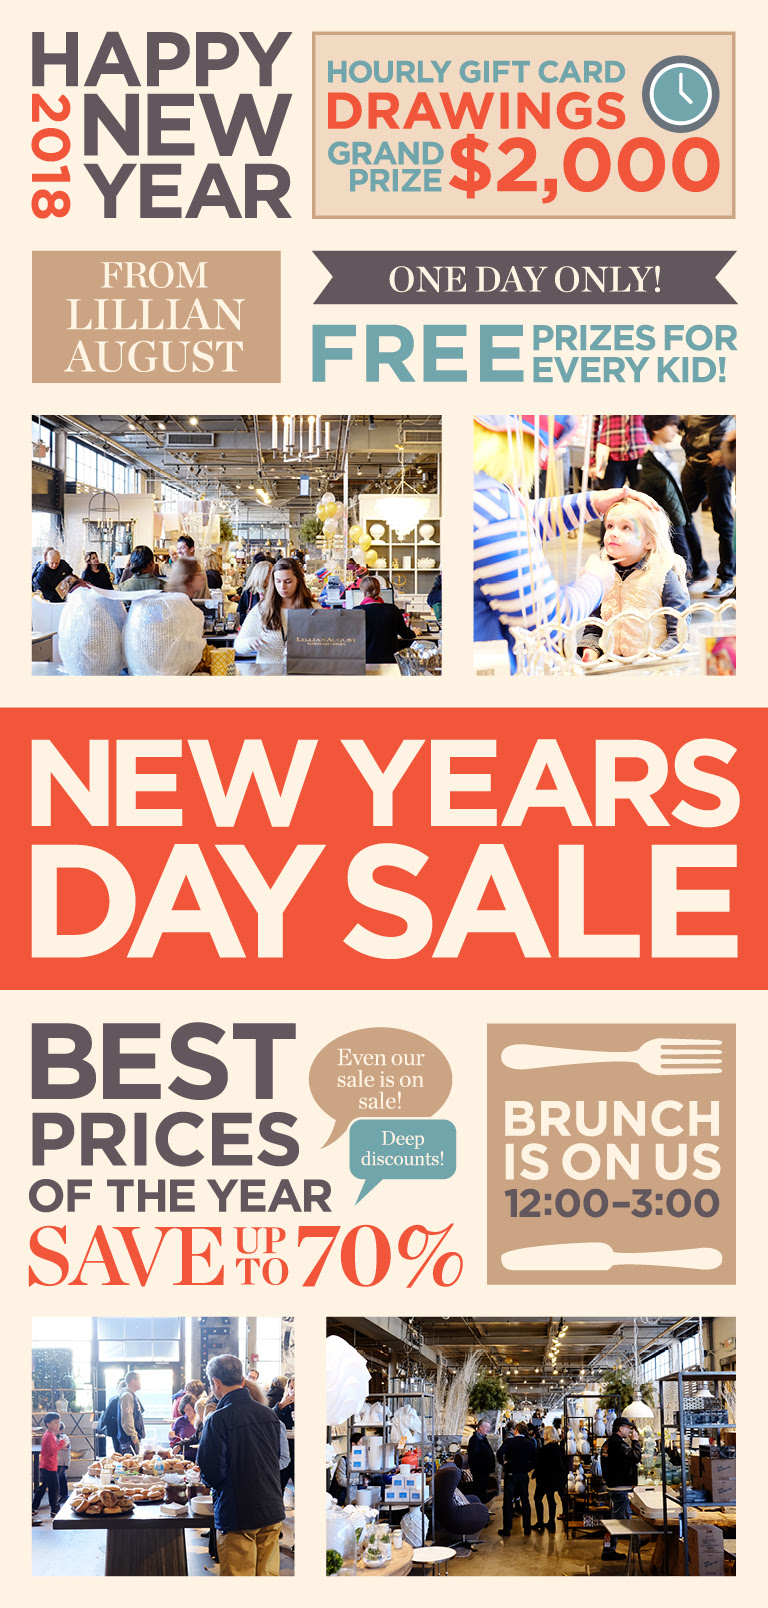 Celebrate New Year's Day Brunch at Lillian August